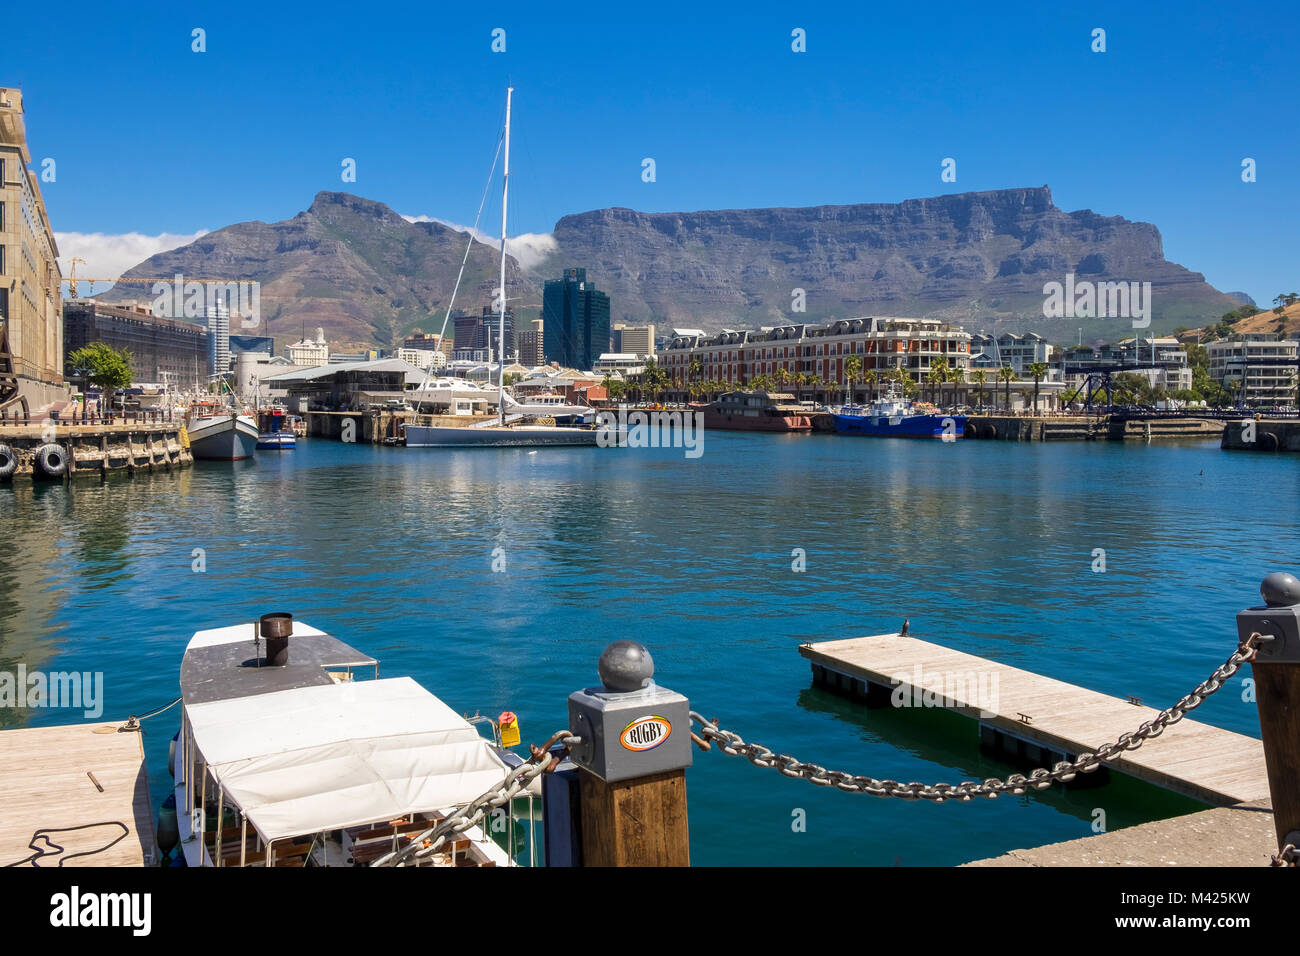 V&A Waterfront, Cape Town, South Africa, with boats in the Marina, the Cape Grace Hotel with Table Mountain - Stock Image